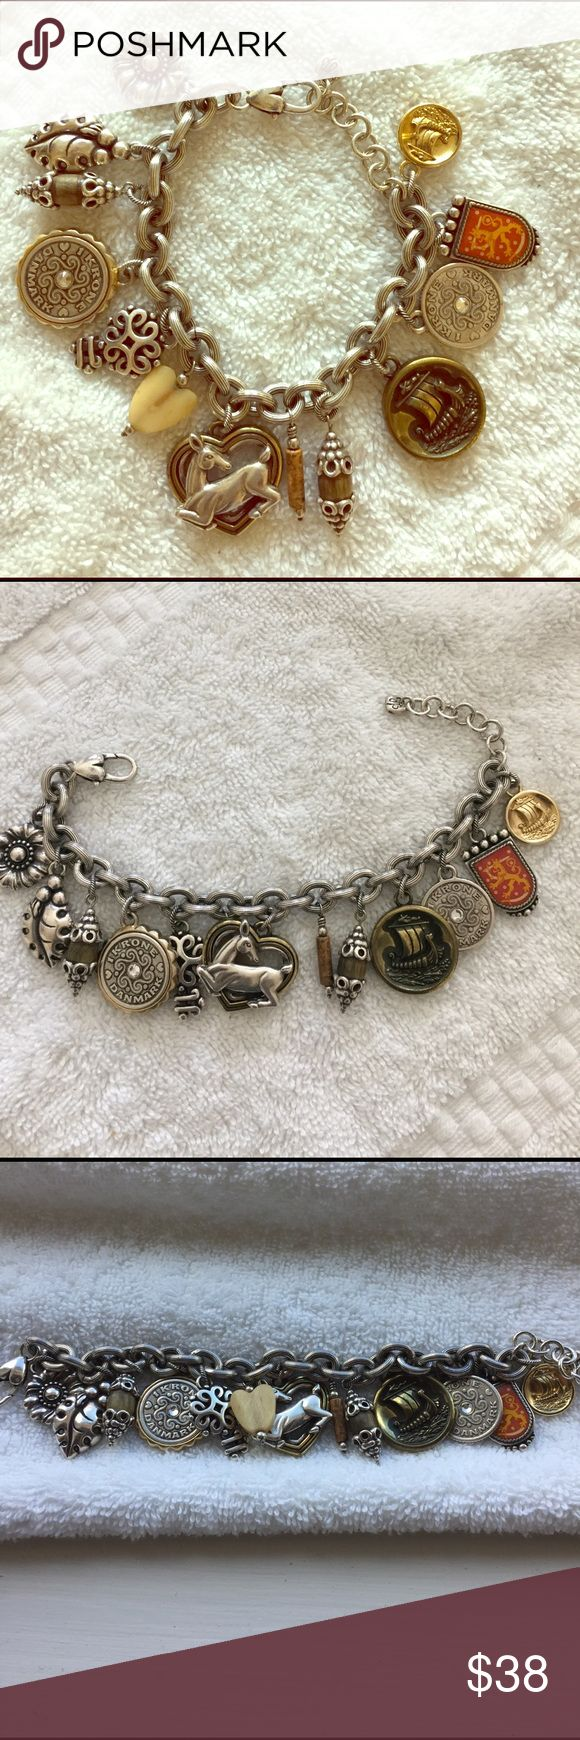 Brighton Charm Bracelet Gorgeous! !Preowned Brighton Charm Bracelet. EUC very light wear. A true charm lovers dream!!😉🌺. Offers Welcome🎉 Brighton Jewelry Bracelets